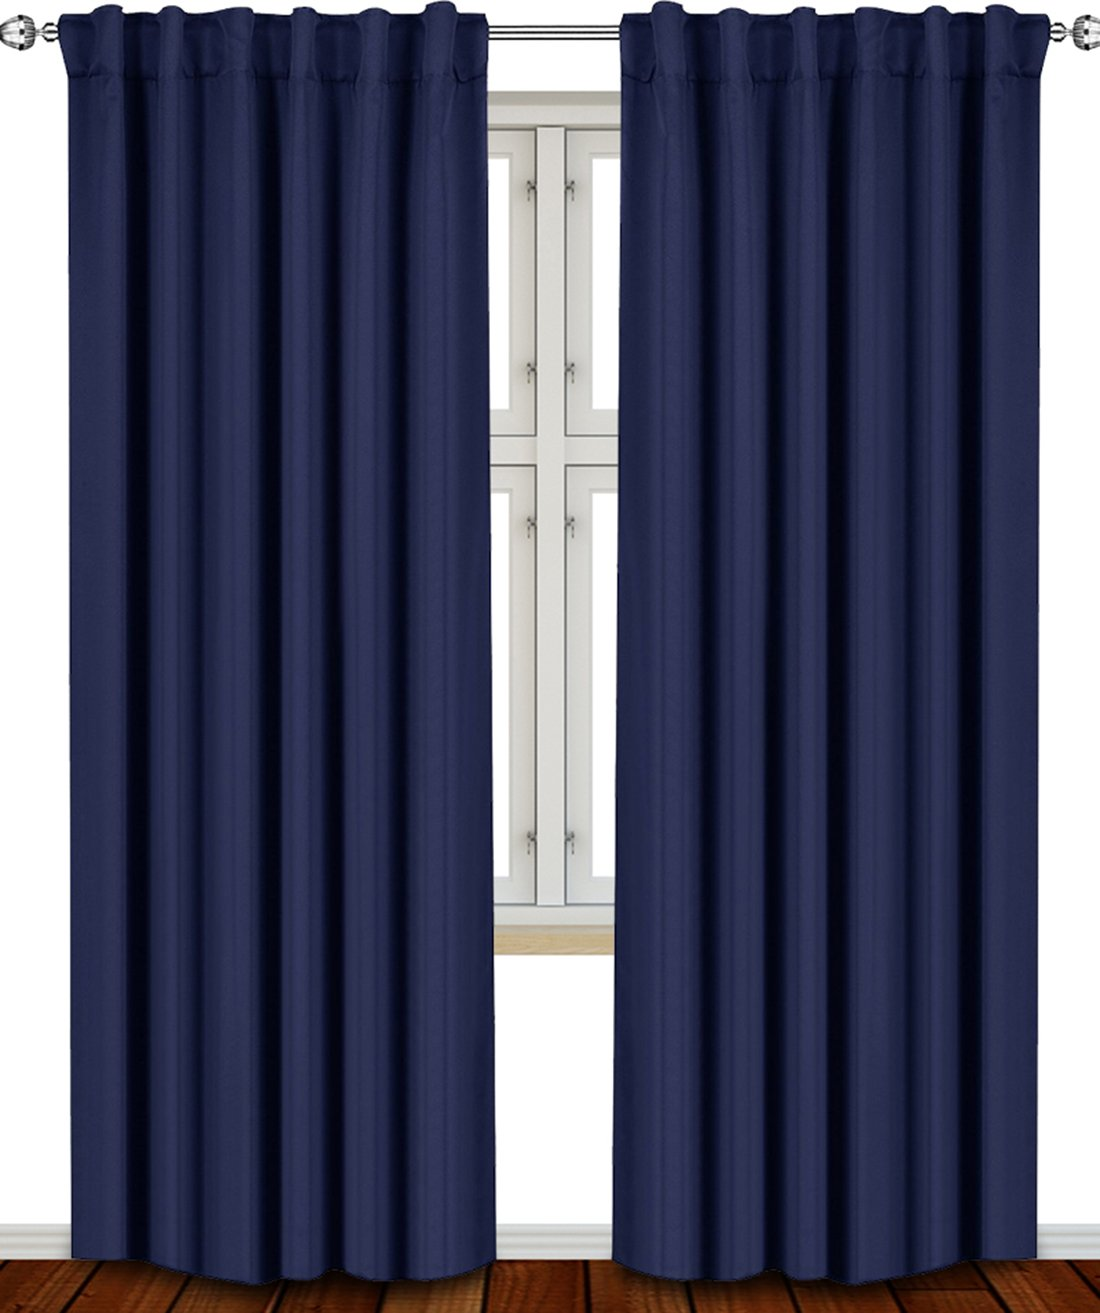 bay curtains paint panels white patterned on floor best velvet drapes and nautical window blue navy ideas beautiful elk